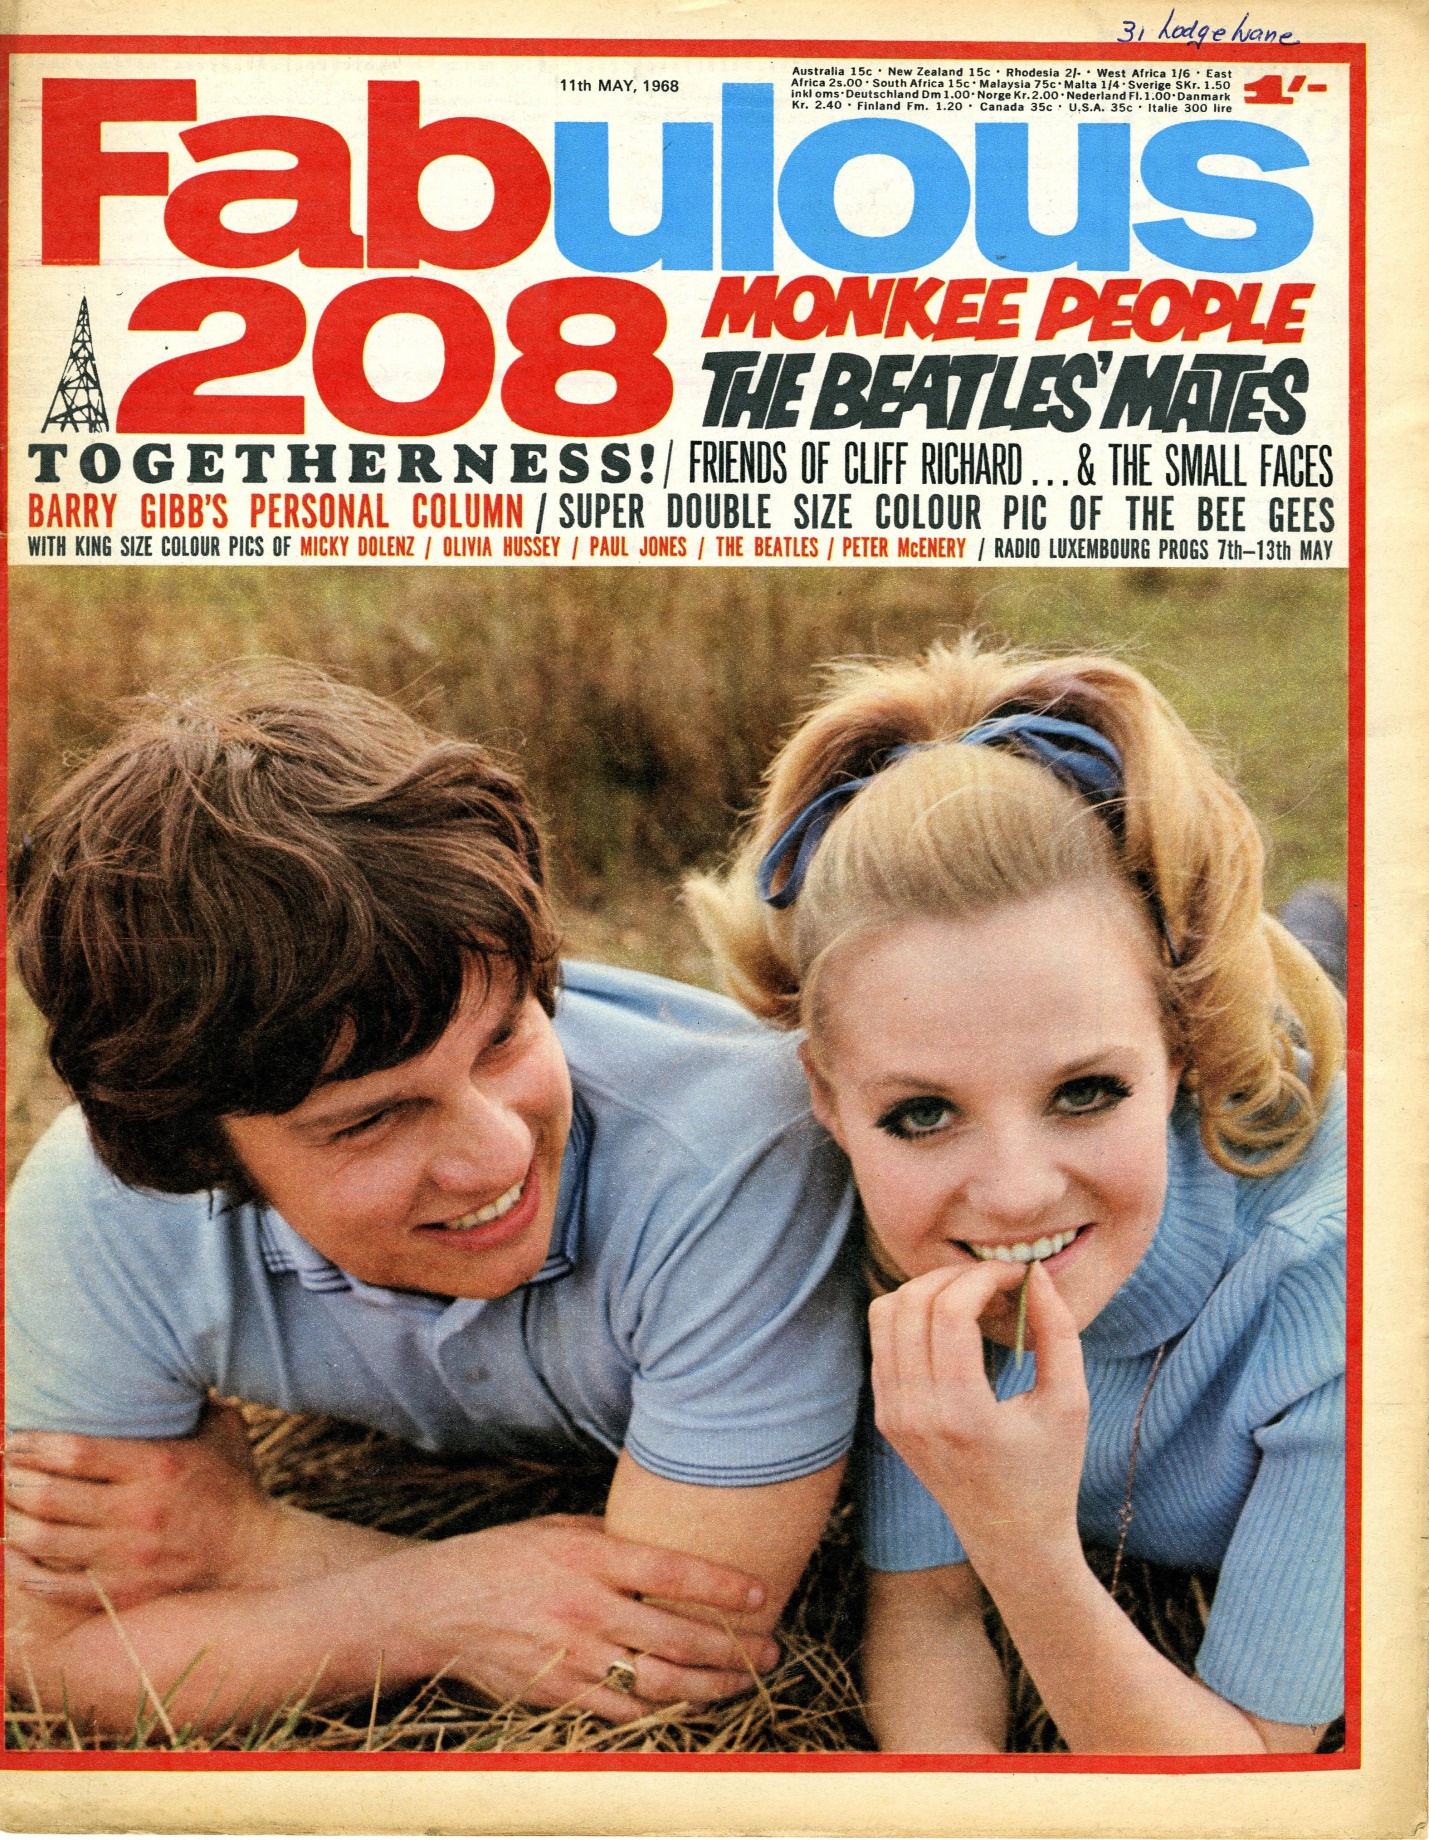 Fabulous, number 208, 11 May 1968